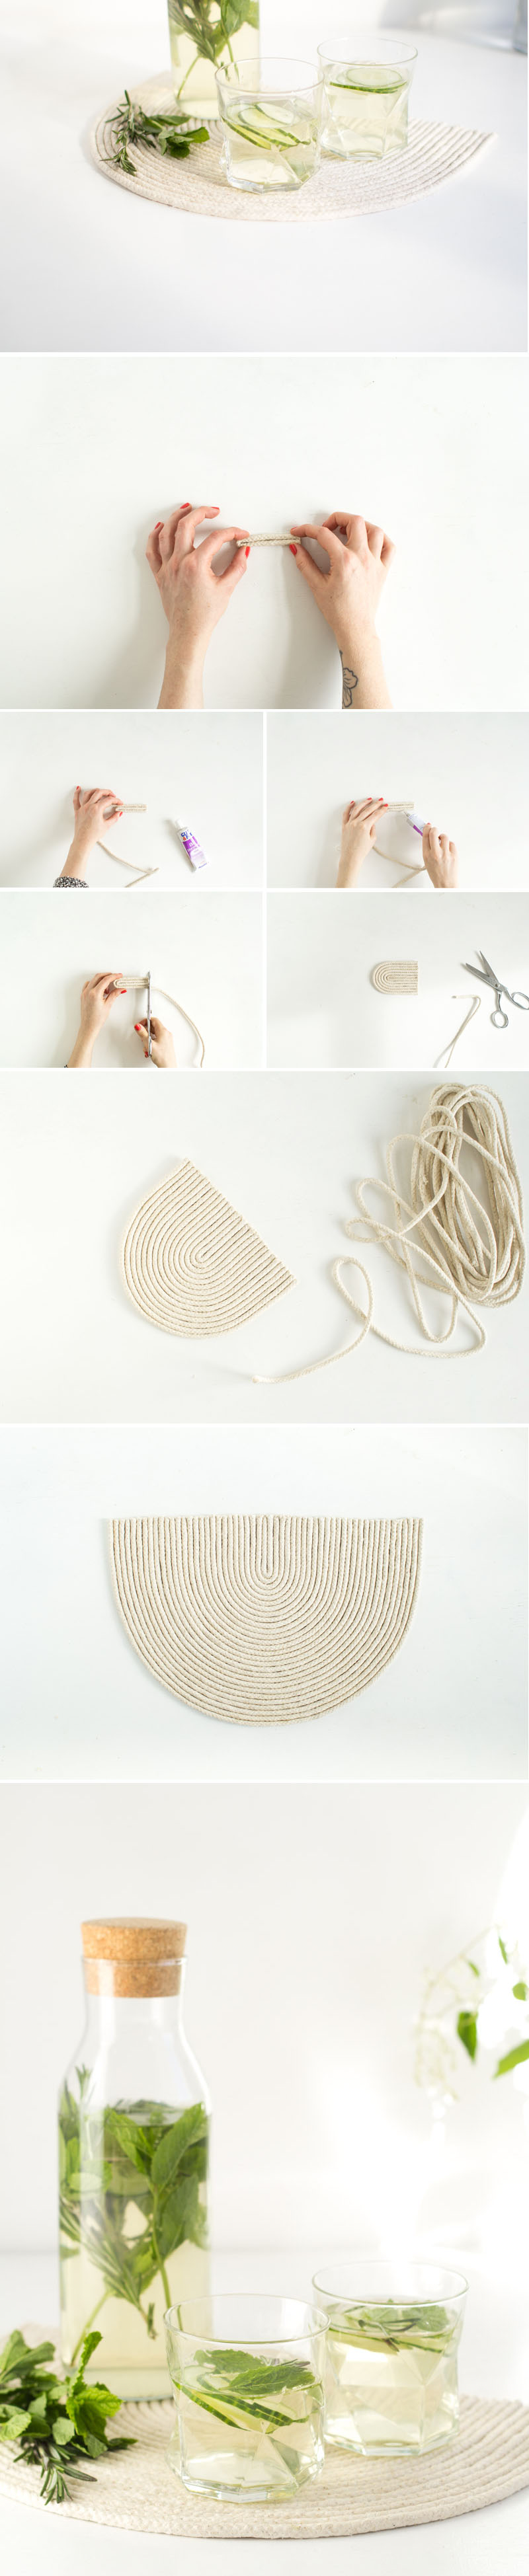 Fall For DIY | Rope trivet mat tutorial